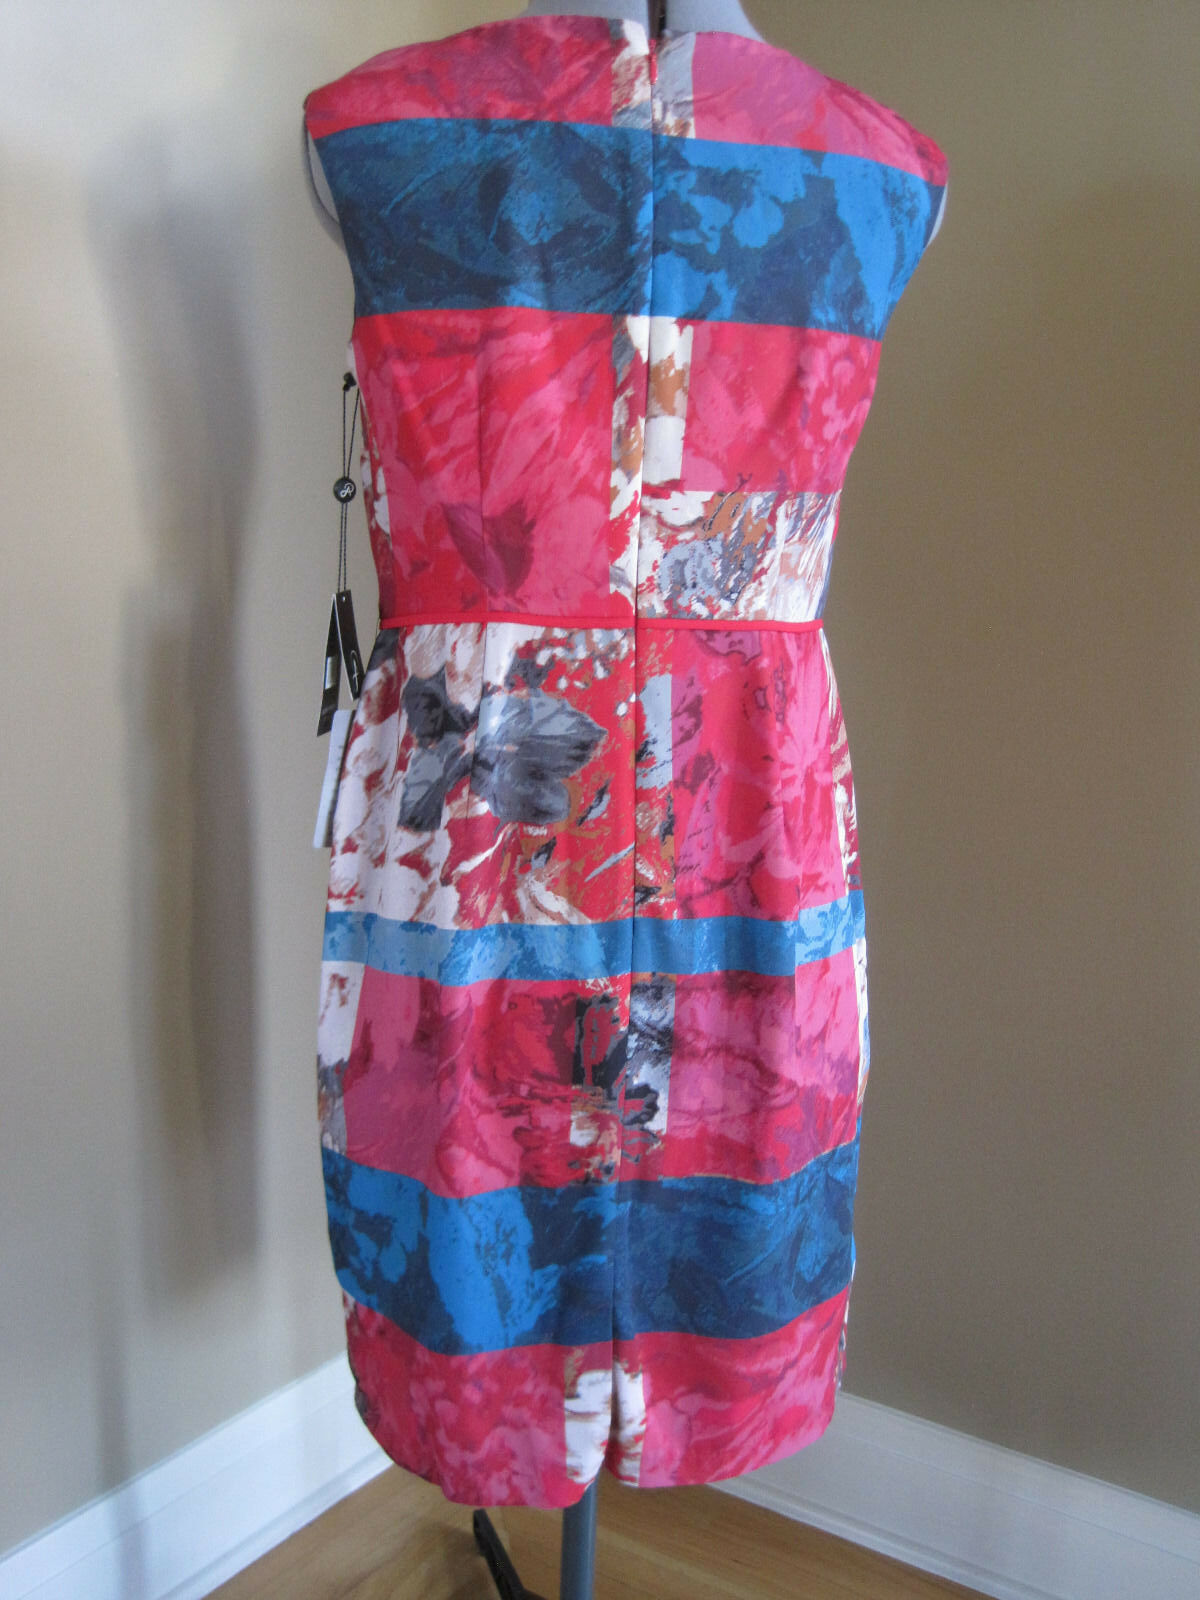 NWT ADRIANNA PAPELL MULTIcolorD FLORAL STRIPE SHEATH DRESS IN SIZE SIZE SIZE 8P d9bf0f